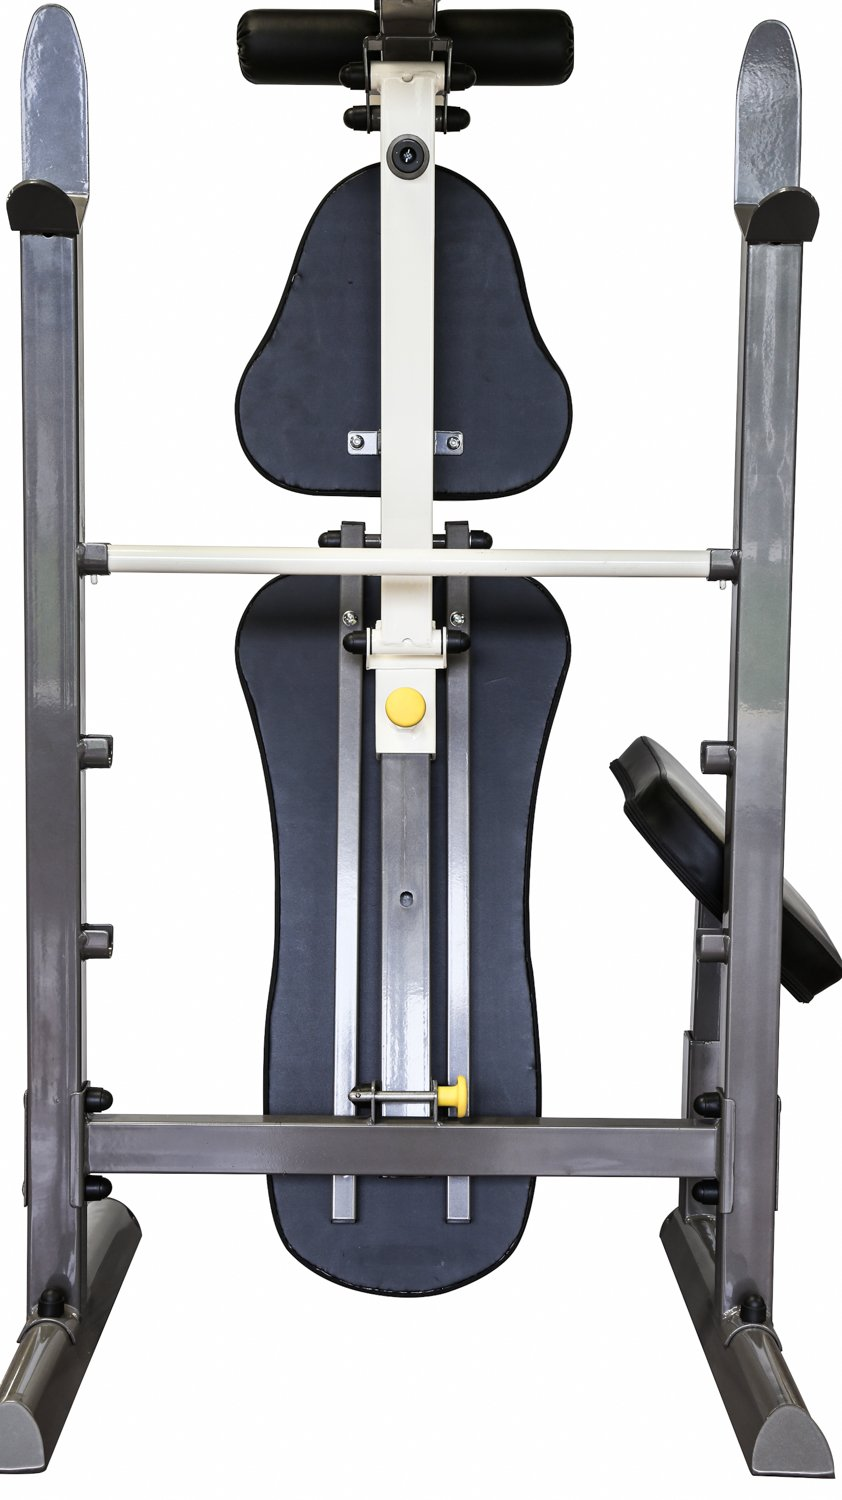 Marcy Folding Standard Weight Bench – Easy Storage MWB-20100 by Marcy (Image #2)